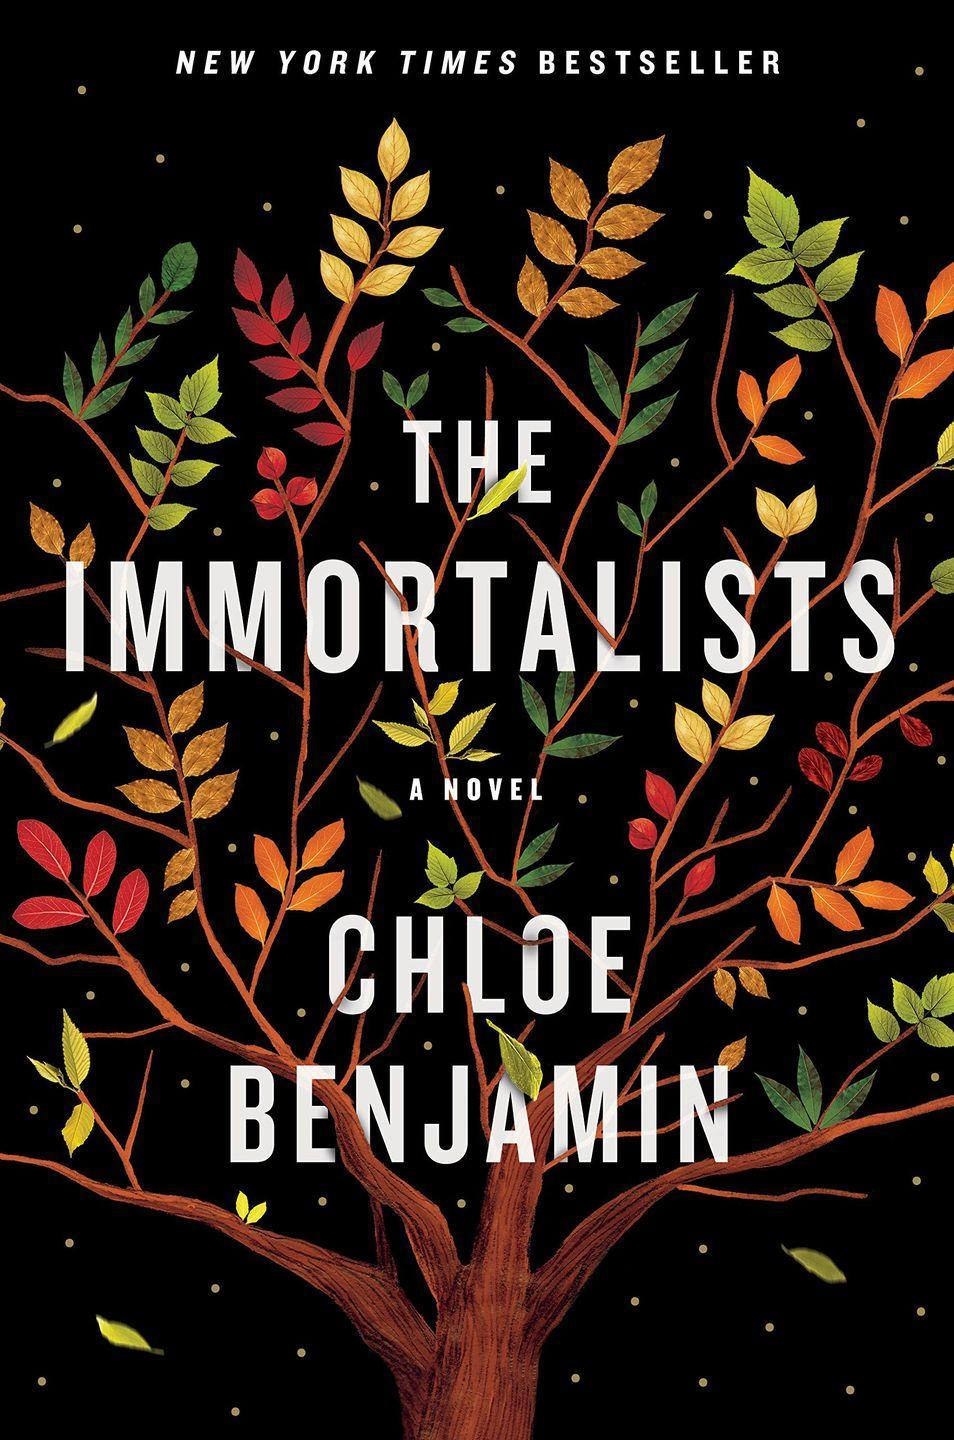 "<p>$16</p><p><a href=""https://www.amazon.com/Immortalists-Chloe-Benjamin/dp/0735213186"" rel=""nofollow noopener"" target=""_blank"" data-ylk=""slk:BUY NOW"" class=""link rapid-noclick-resp"">BUY NOW</a></p><p>This story follows four teen siblings - Varya, Daniel, Klara, and Simon Gold - who seek out a fortuneteller who tells each of them the day they will die. In the years that follow, the siblings grapple with the intersection between life and death, and find themselves questioning what to do with the time they have left. <br></p>"